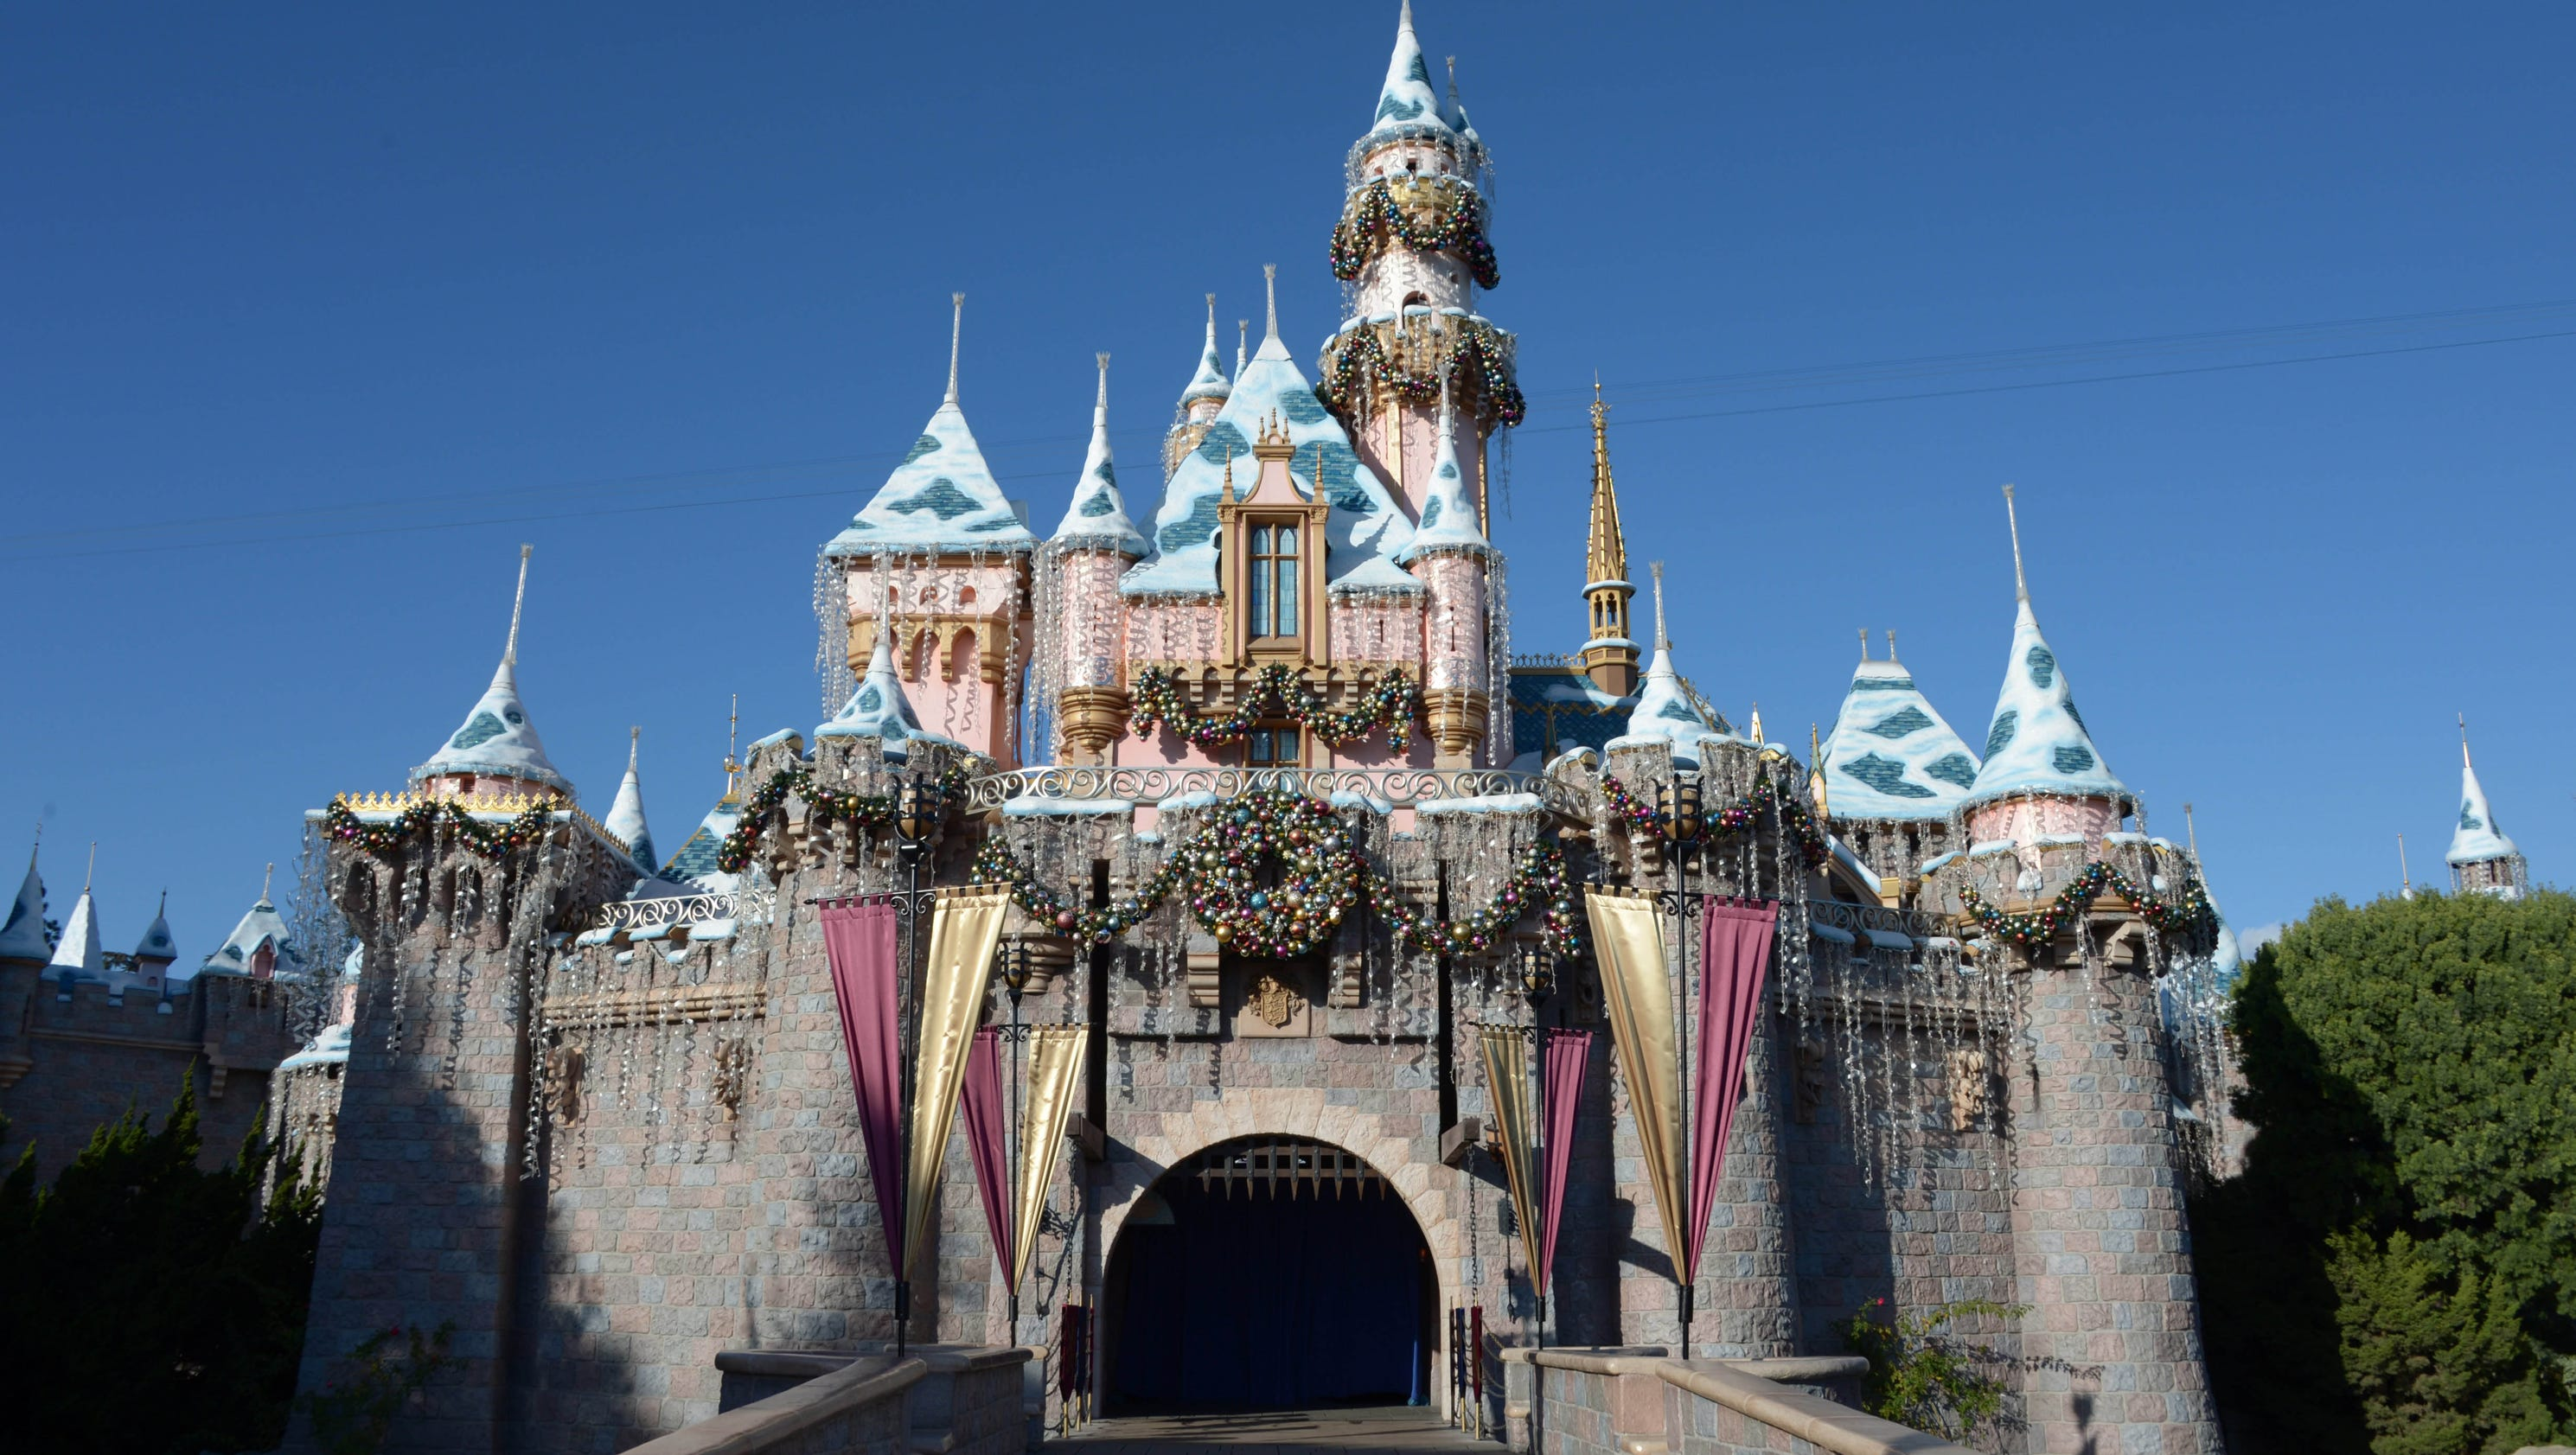 With summer looming, Disneyland raises prices